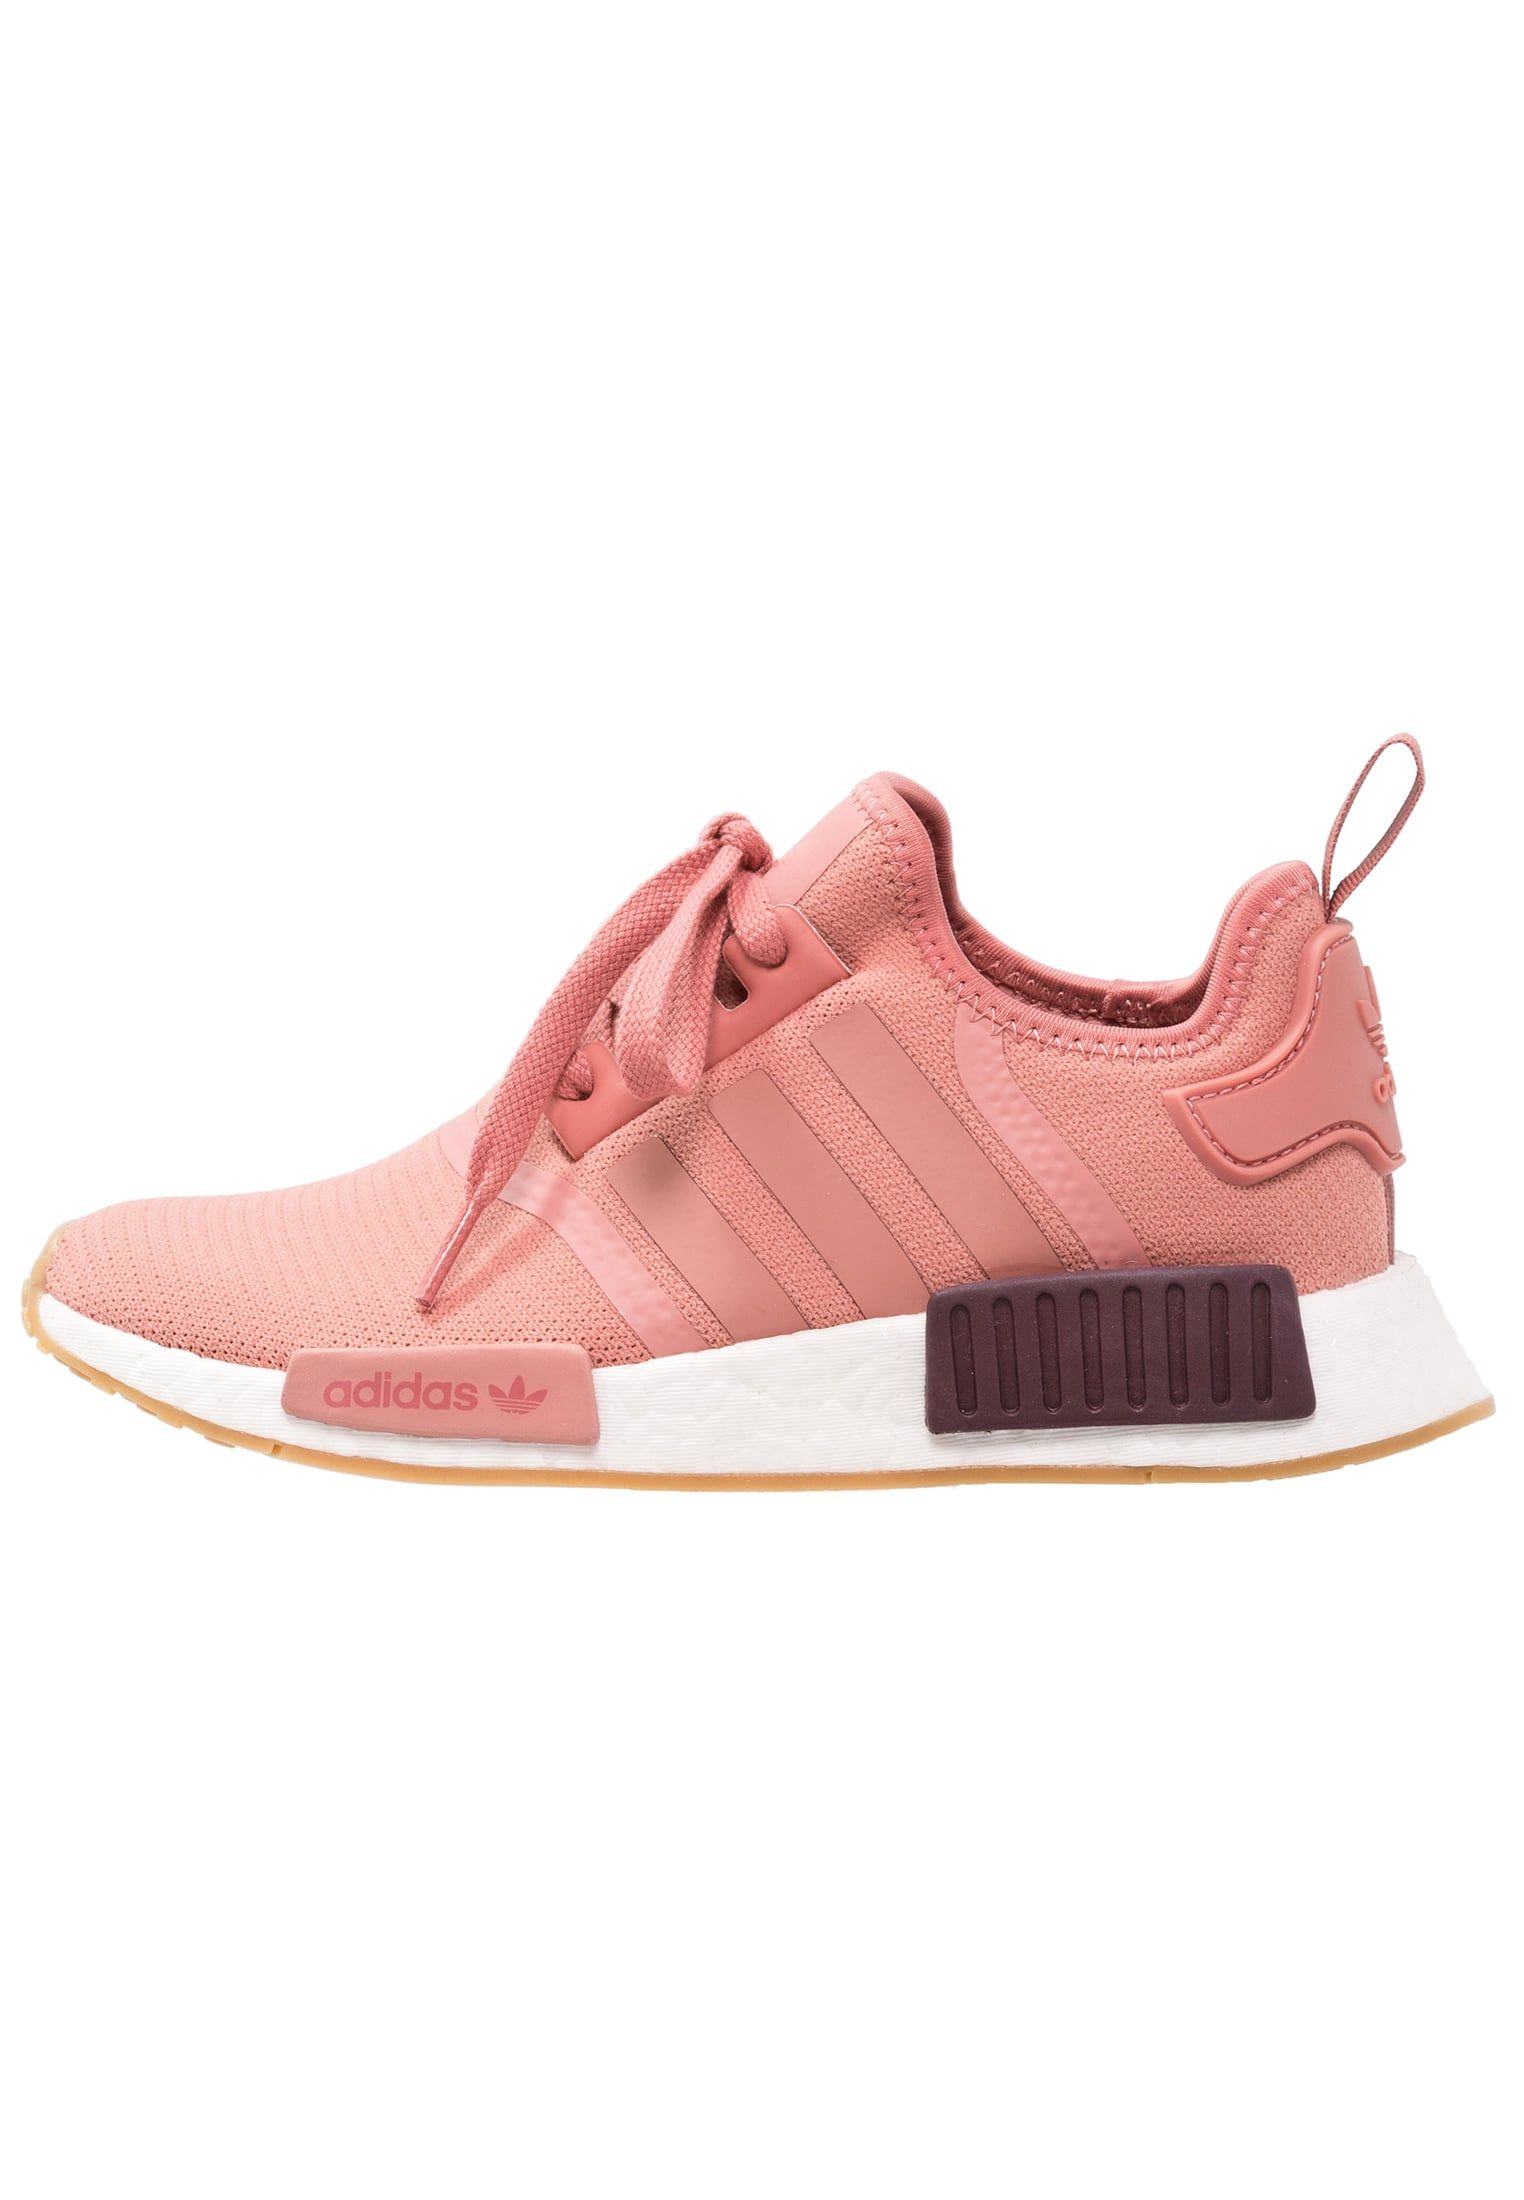 adidas Originals NMD_R1 - EXCLUSIVE - Trainers - raw pink/footwear white FGUhyQs0